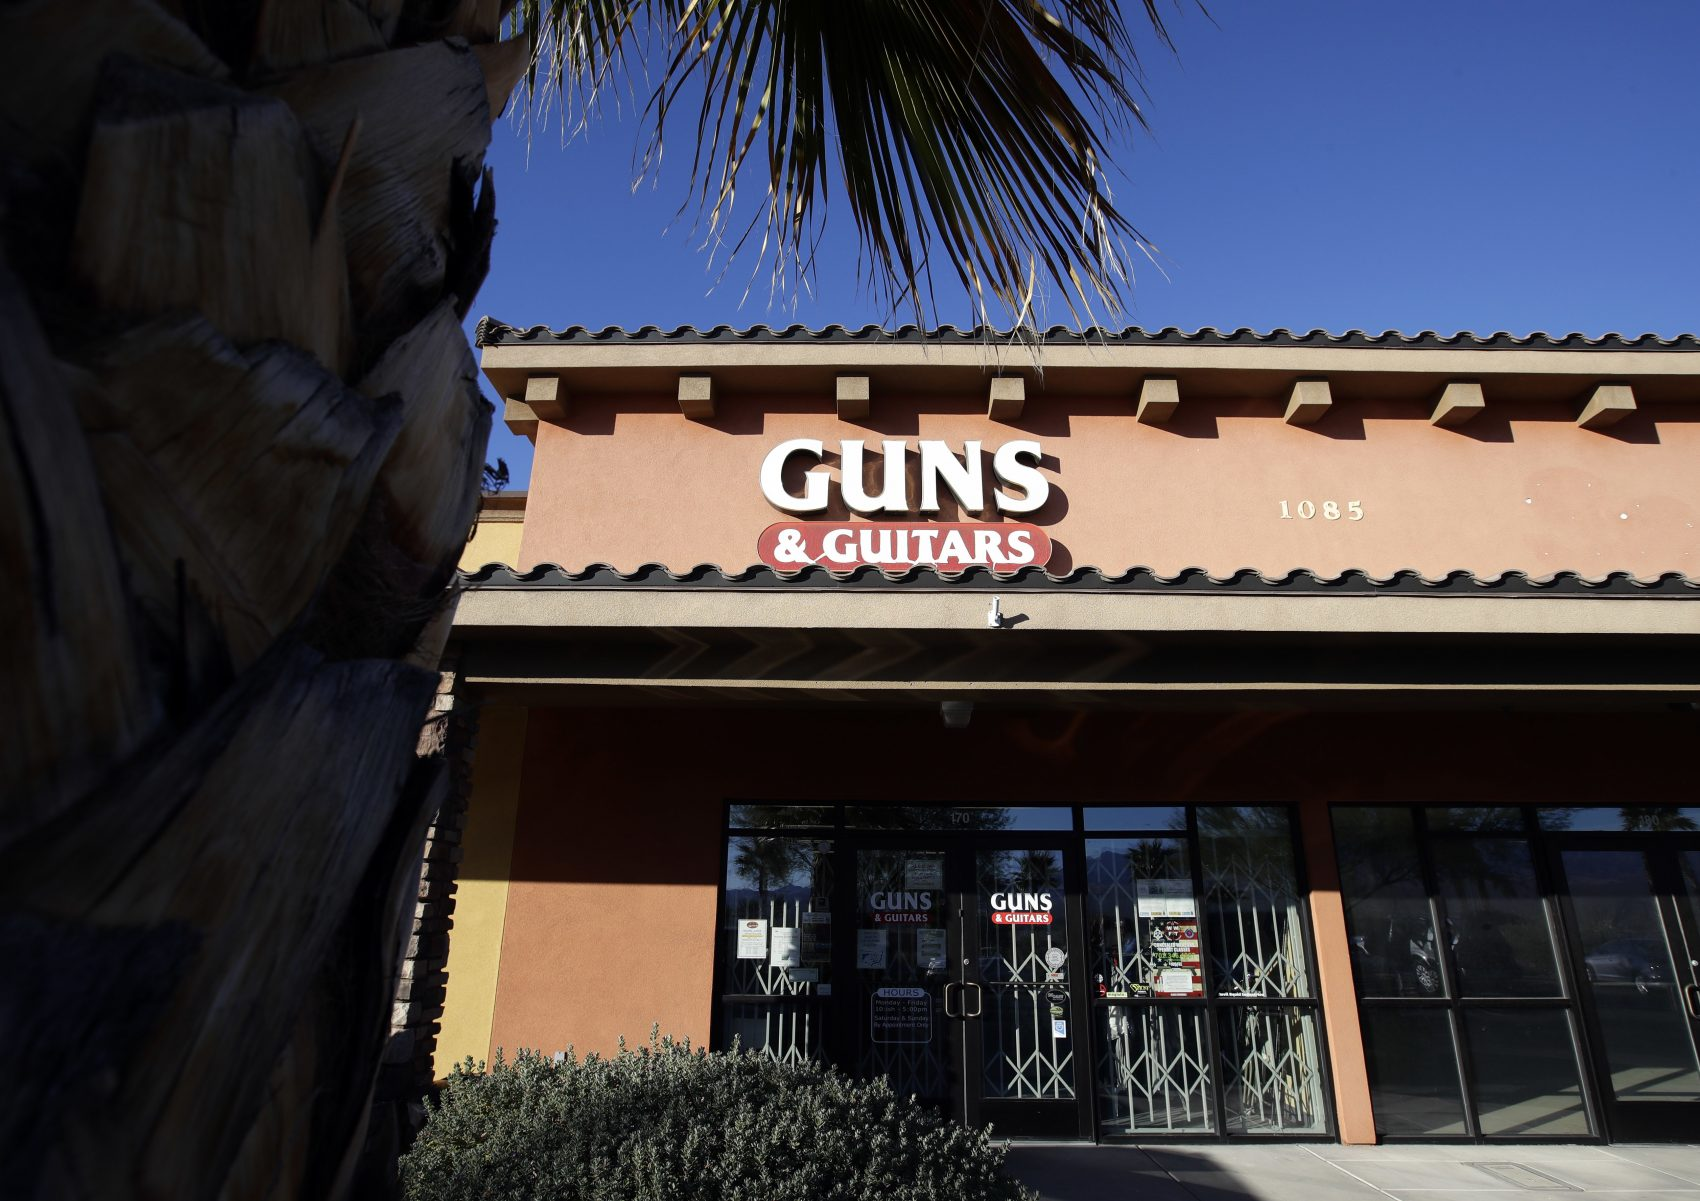 The Guns & Guitars store is shown in Mesquite, Nev., Monday, Oct. 2, 2017. The store's general manager Christopher Sullivan said in a statement Monday that Stephen Craig Paddock showed no signs of being unfit to buy guns. Paddock killed dozens and injured hundreds Sunday night when he opened fired at an outdoor country music festival in Las Vegas. (Chris Carlson/AP)